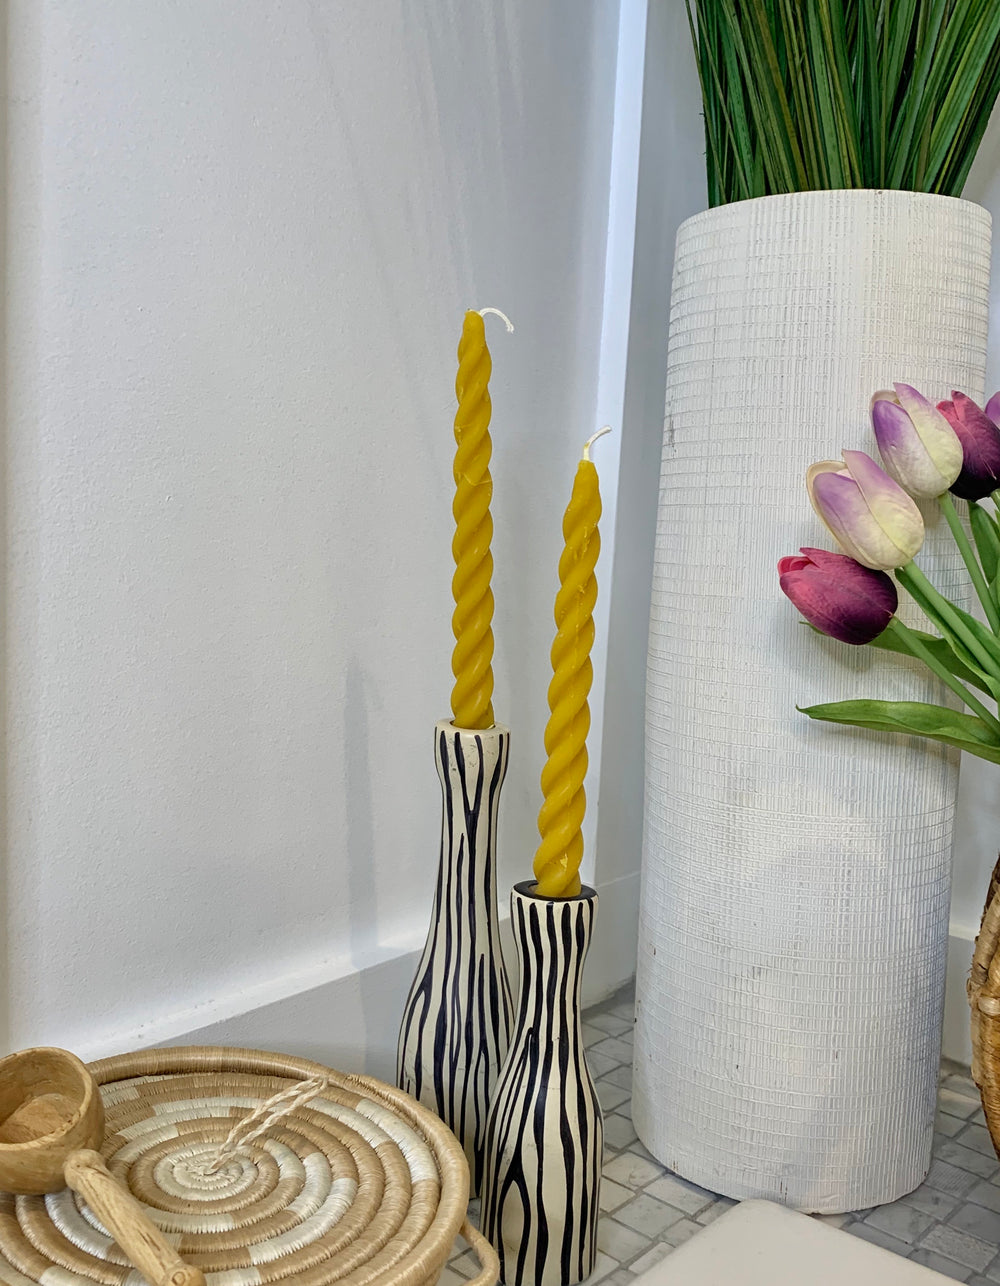 Hand Dipped Twisted Candles by Beeutiful Creations from Rwanda